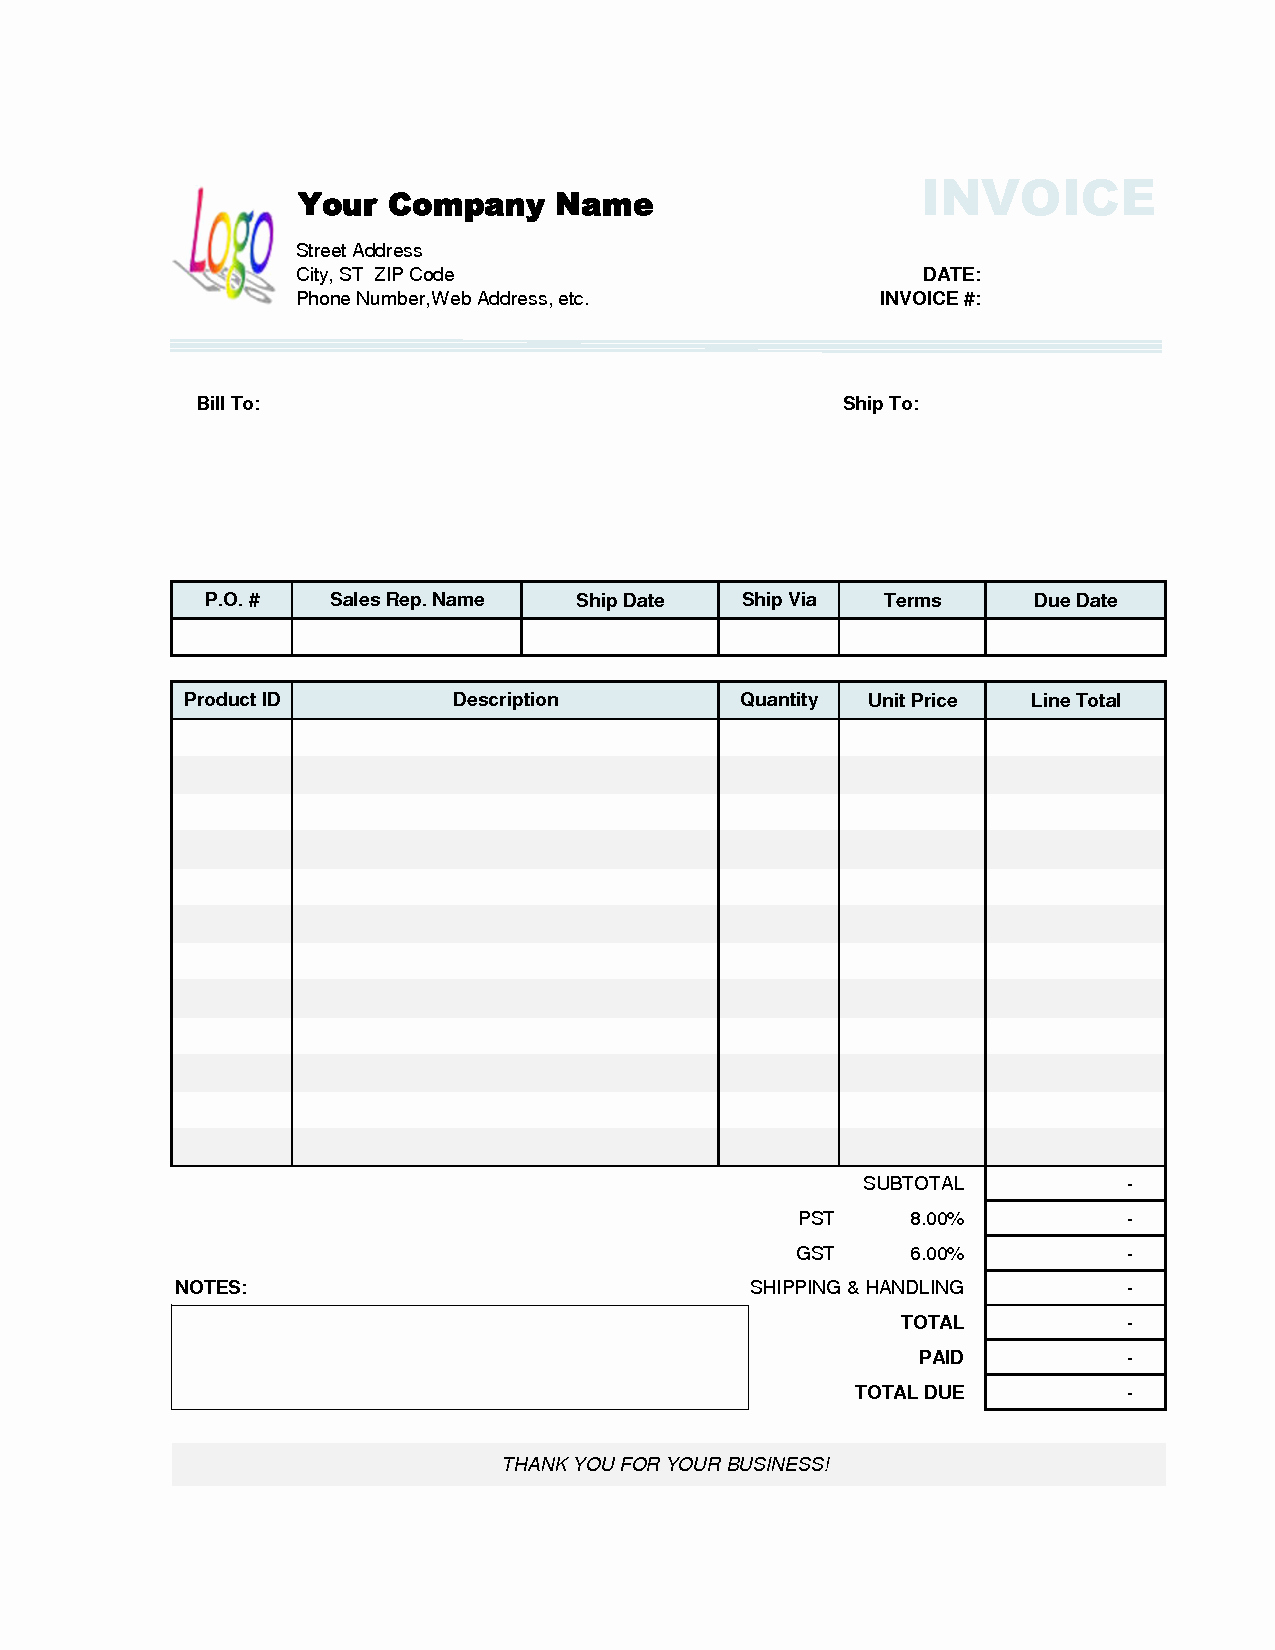 Free Excel Invoice Template Beautiful Invoice Template Excel 2010